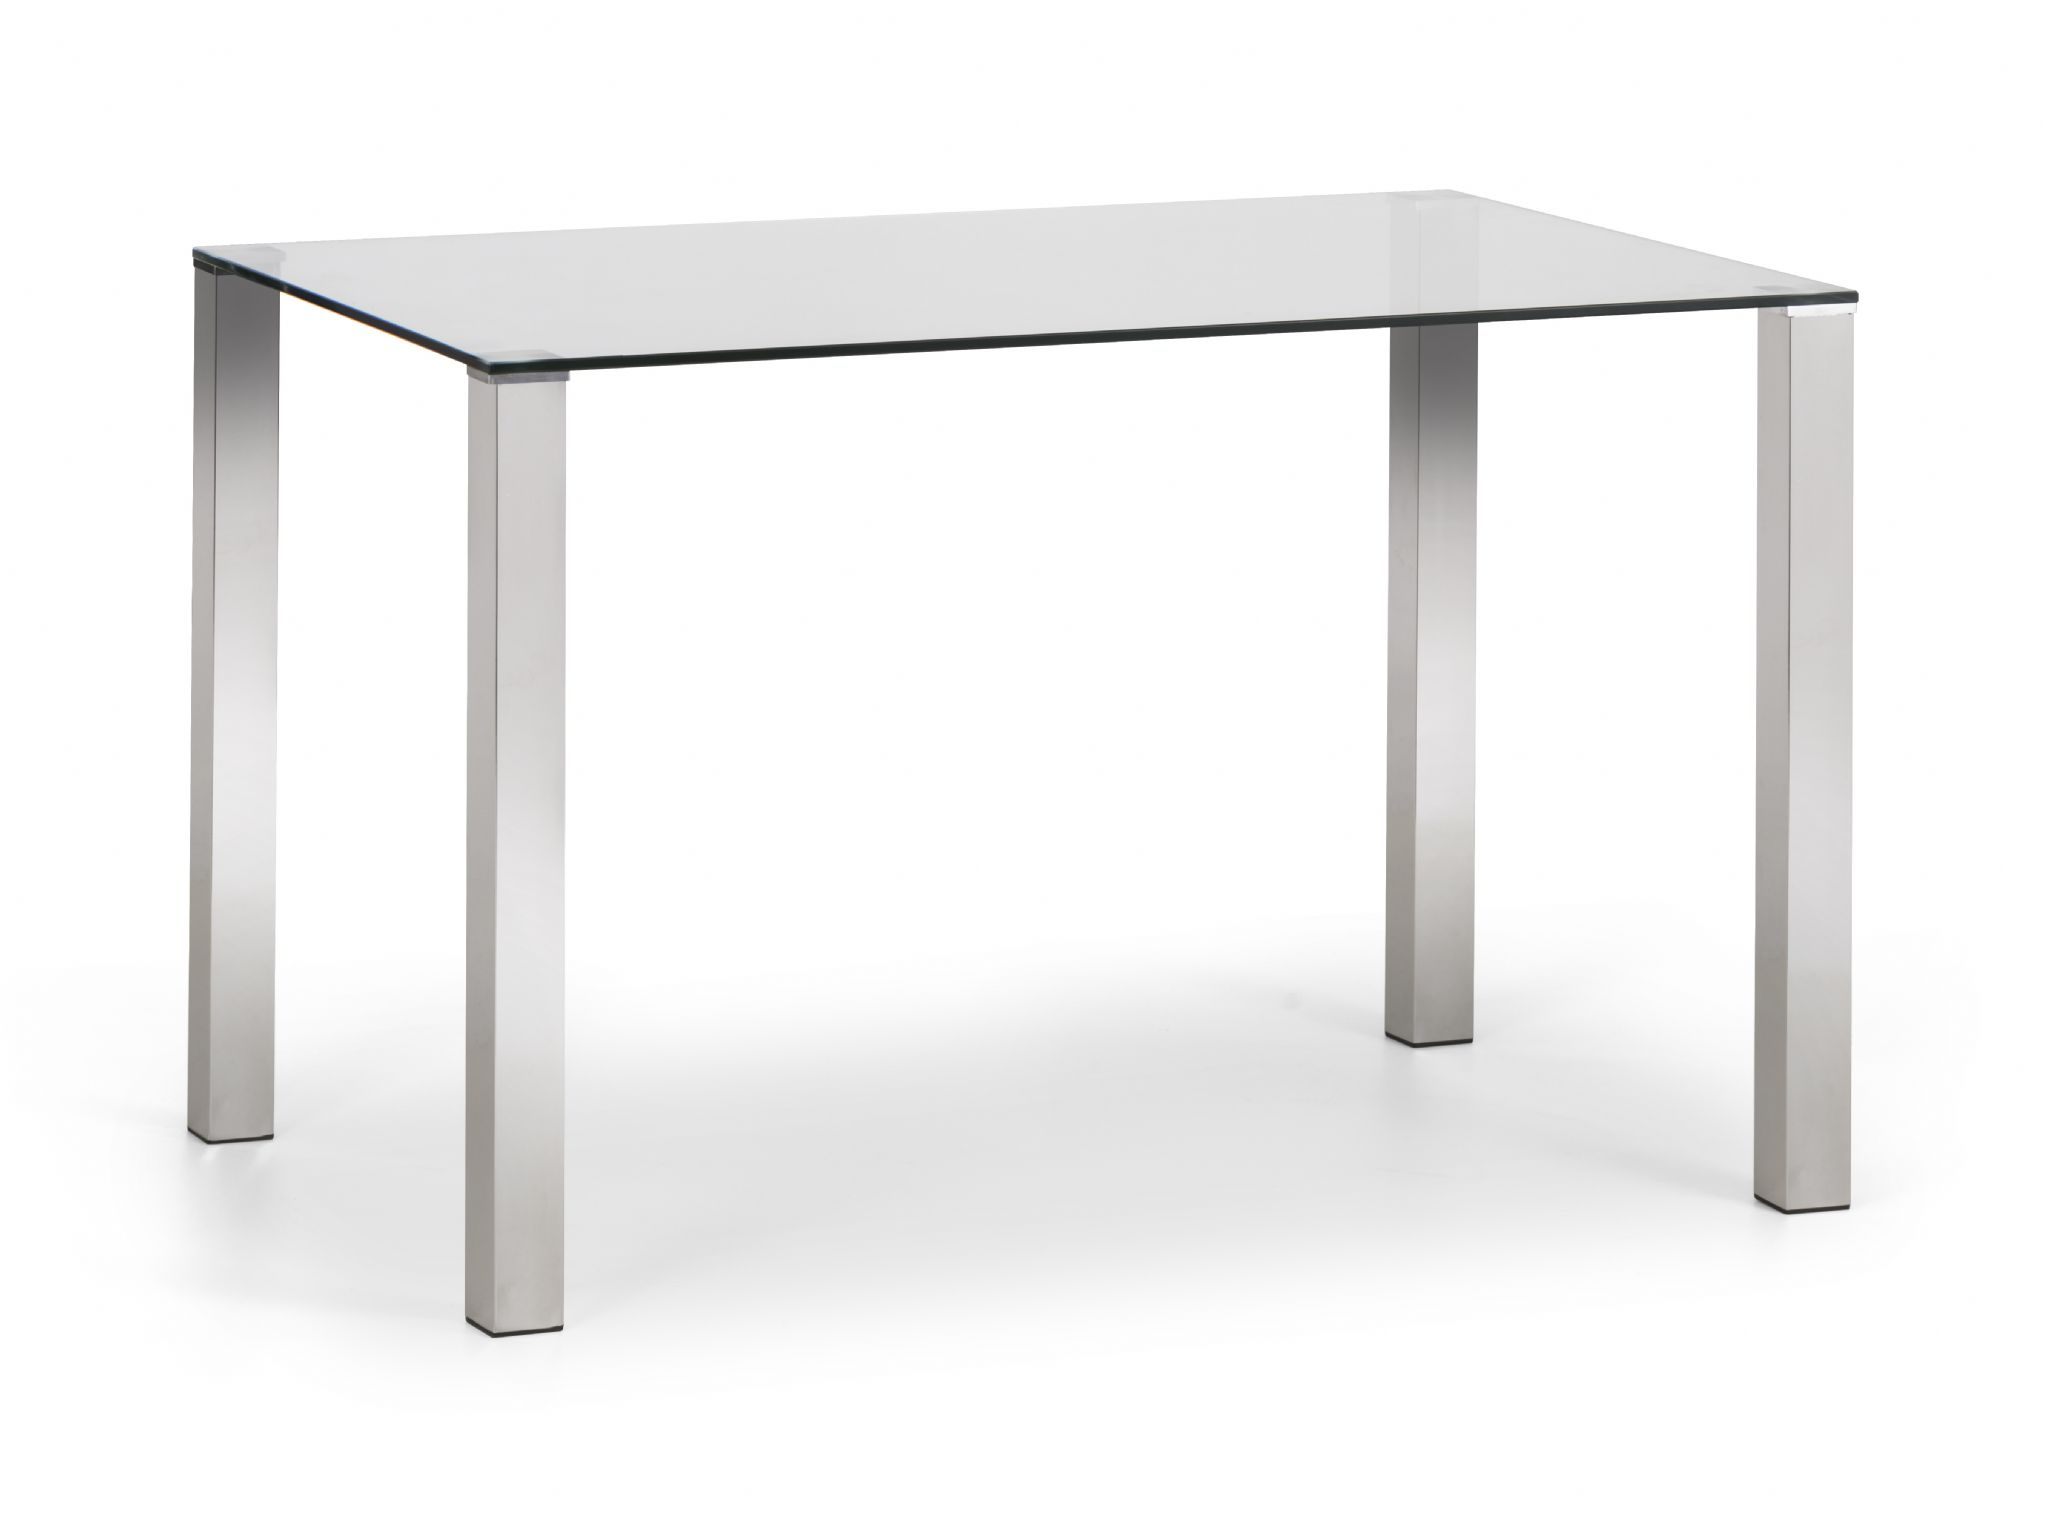 Veneto Modern Chrome & Tempered Glass Dining Table Jb208 Regarding Best And Newest Chrome Dining Tables With Tempered Glass (View 4 of 30)